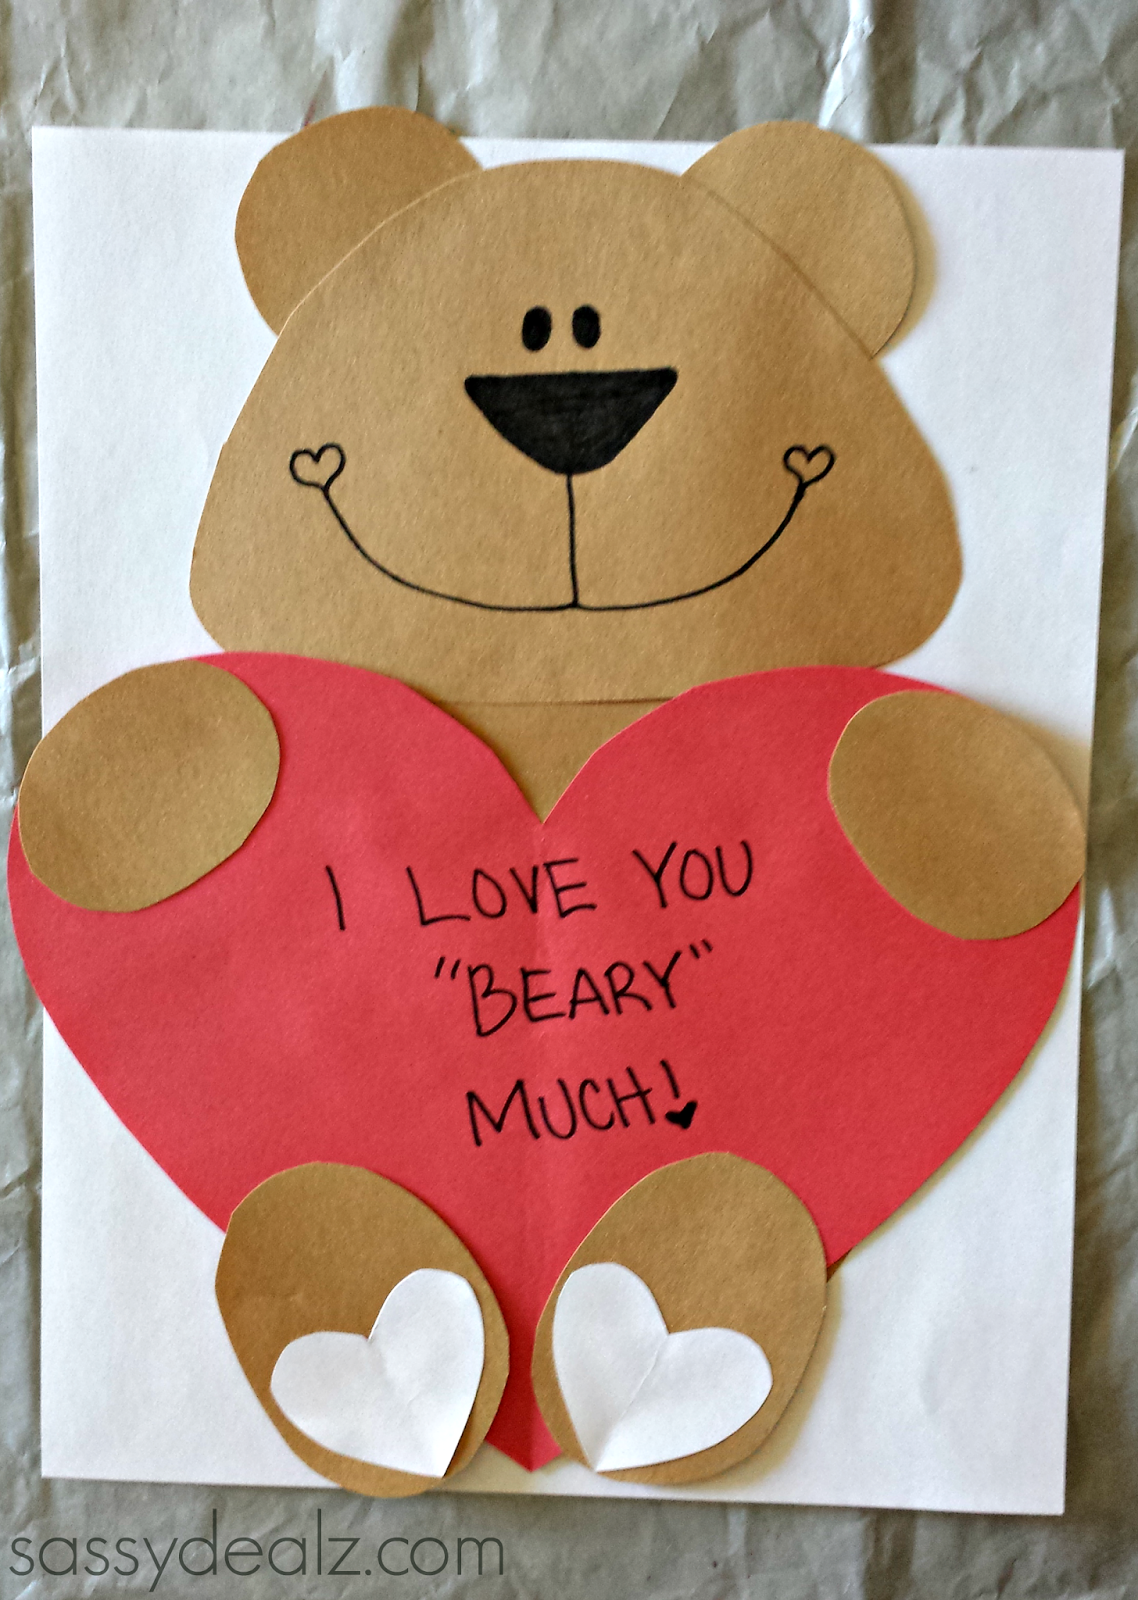 Valentines day art and crafts for preschoolers - Find This Pin And More On Lovey Dovey Day I Love You Beary Much Valentine Bear Craft For Kids Valentines Card Art Project